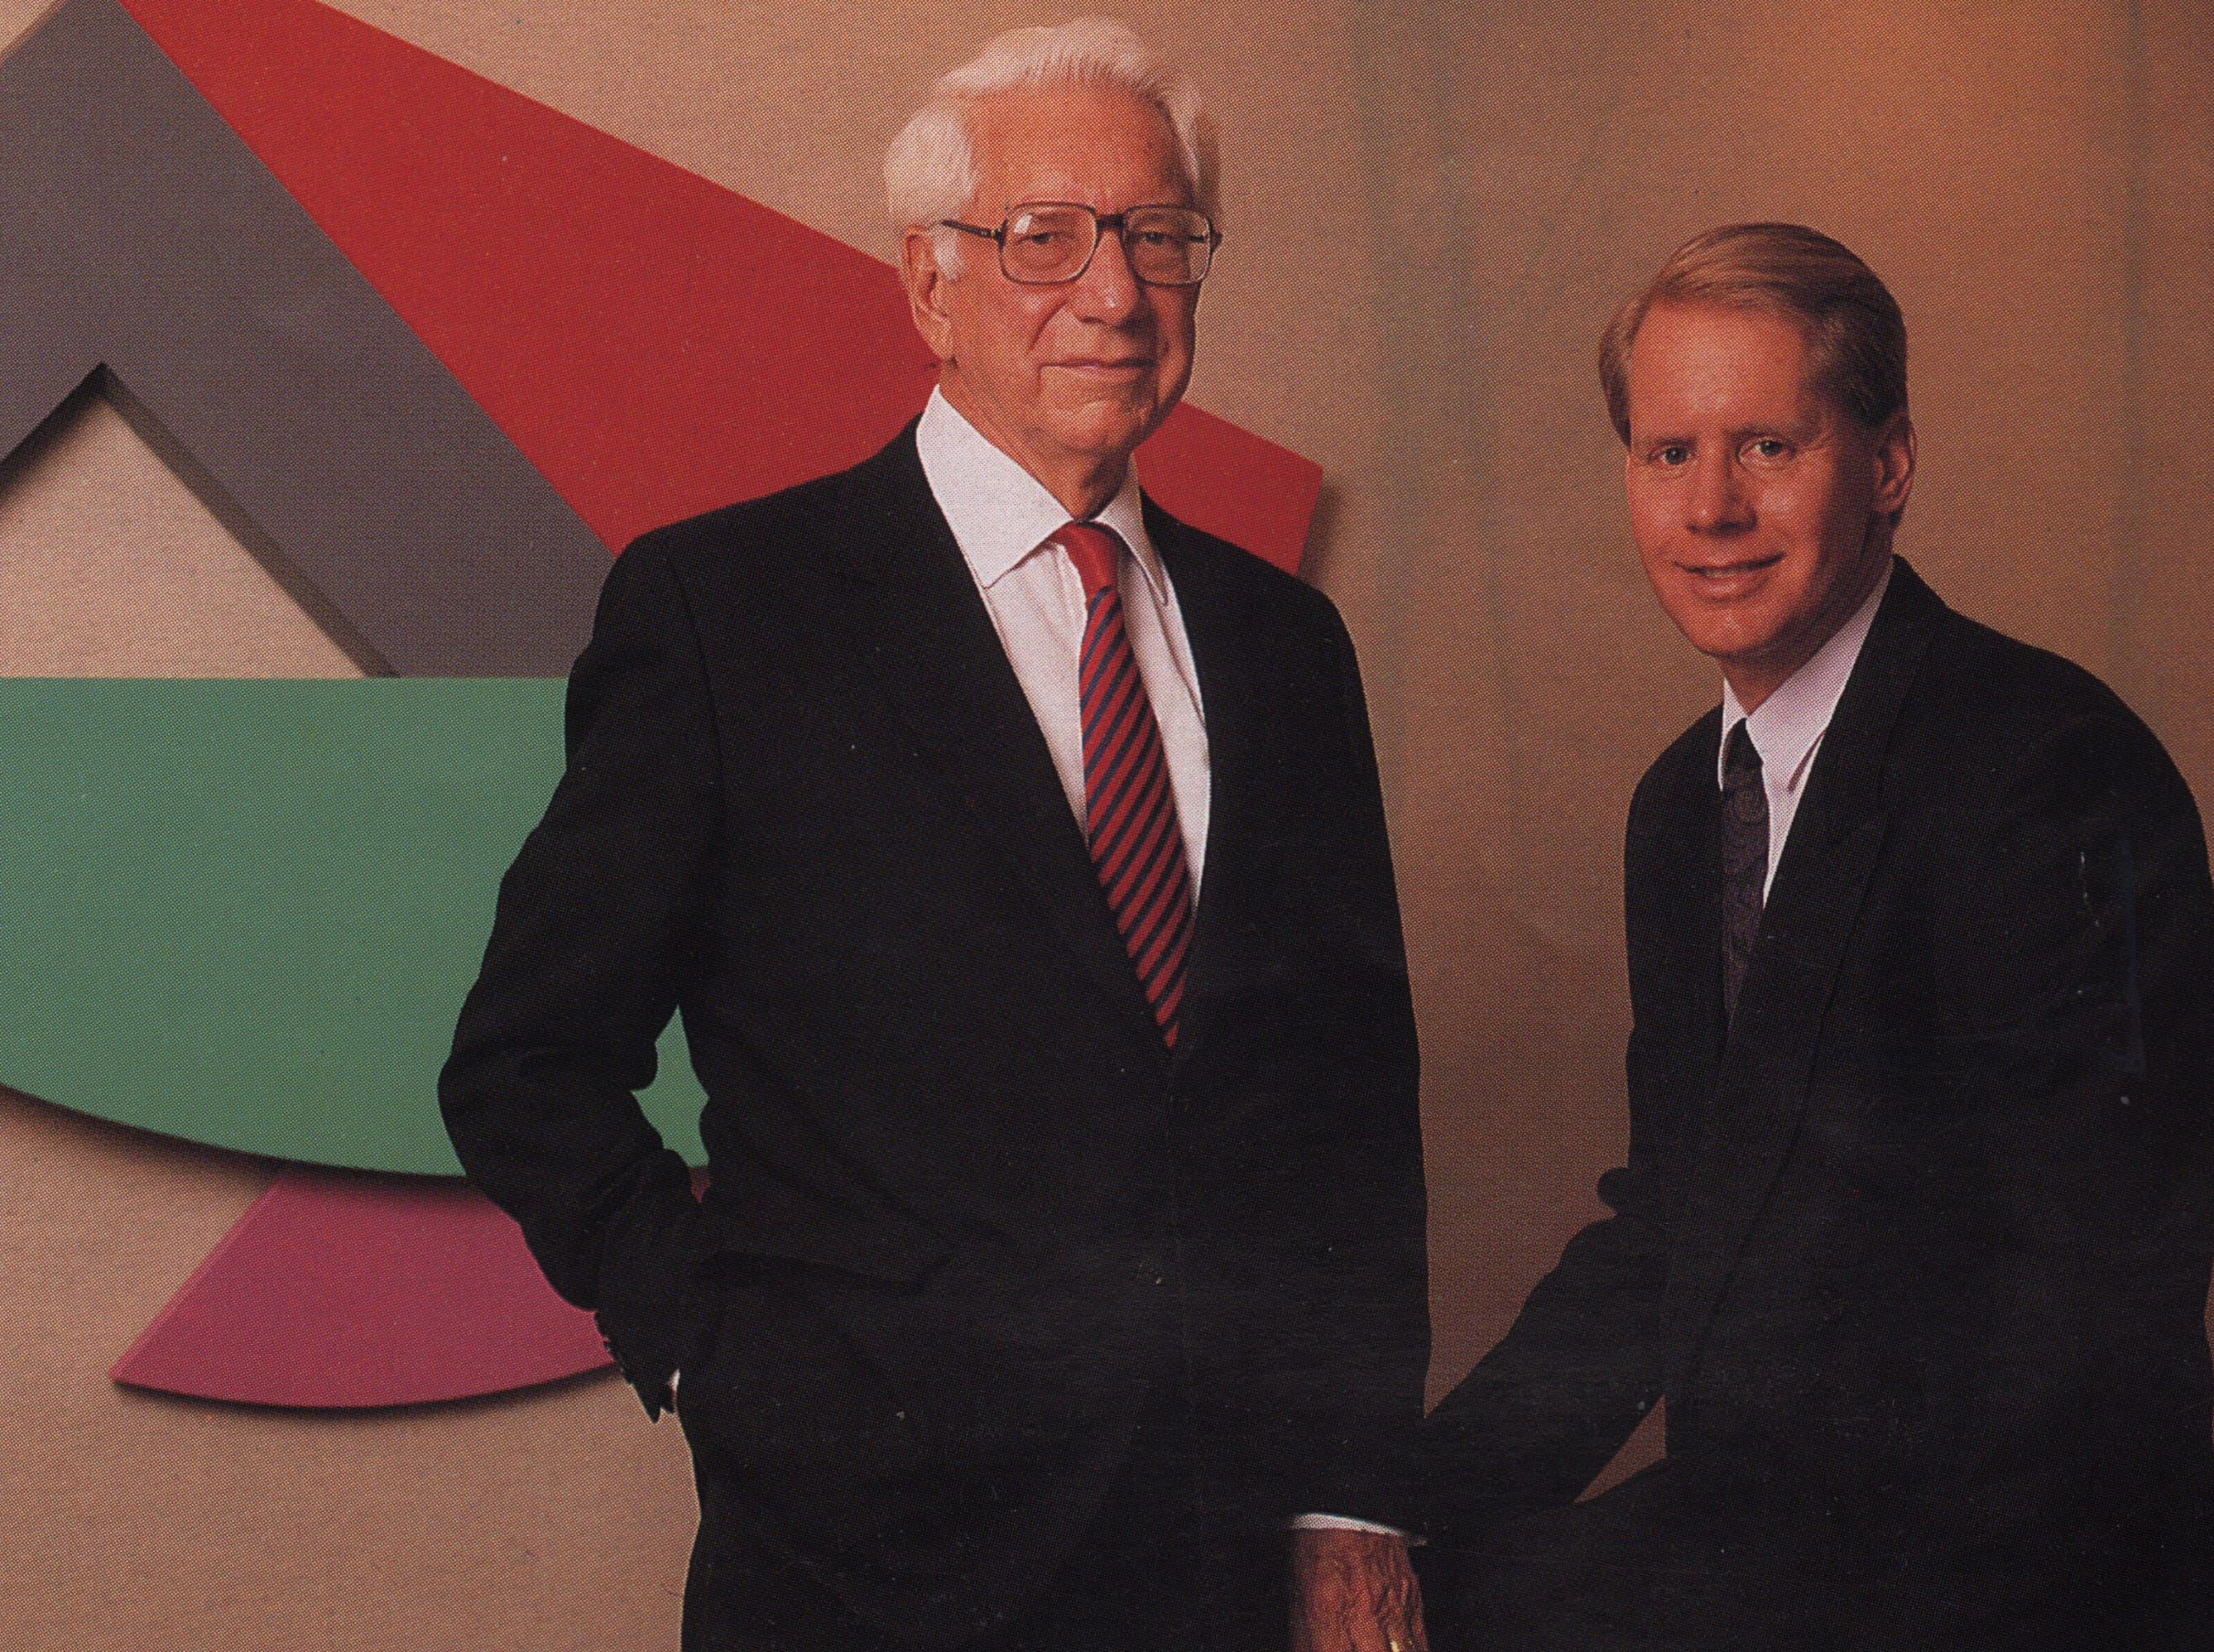 Father and son headed Great American Insurance in 1993: Carl H. Lindner Jr. (left), chairman of the board and executive officer, and Carl H. Lindner III, president and chief operating officer.